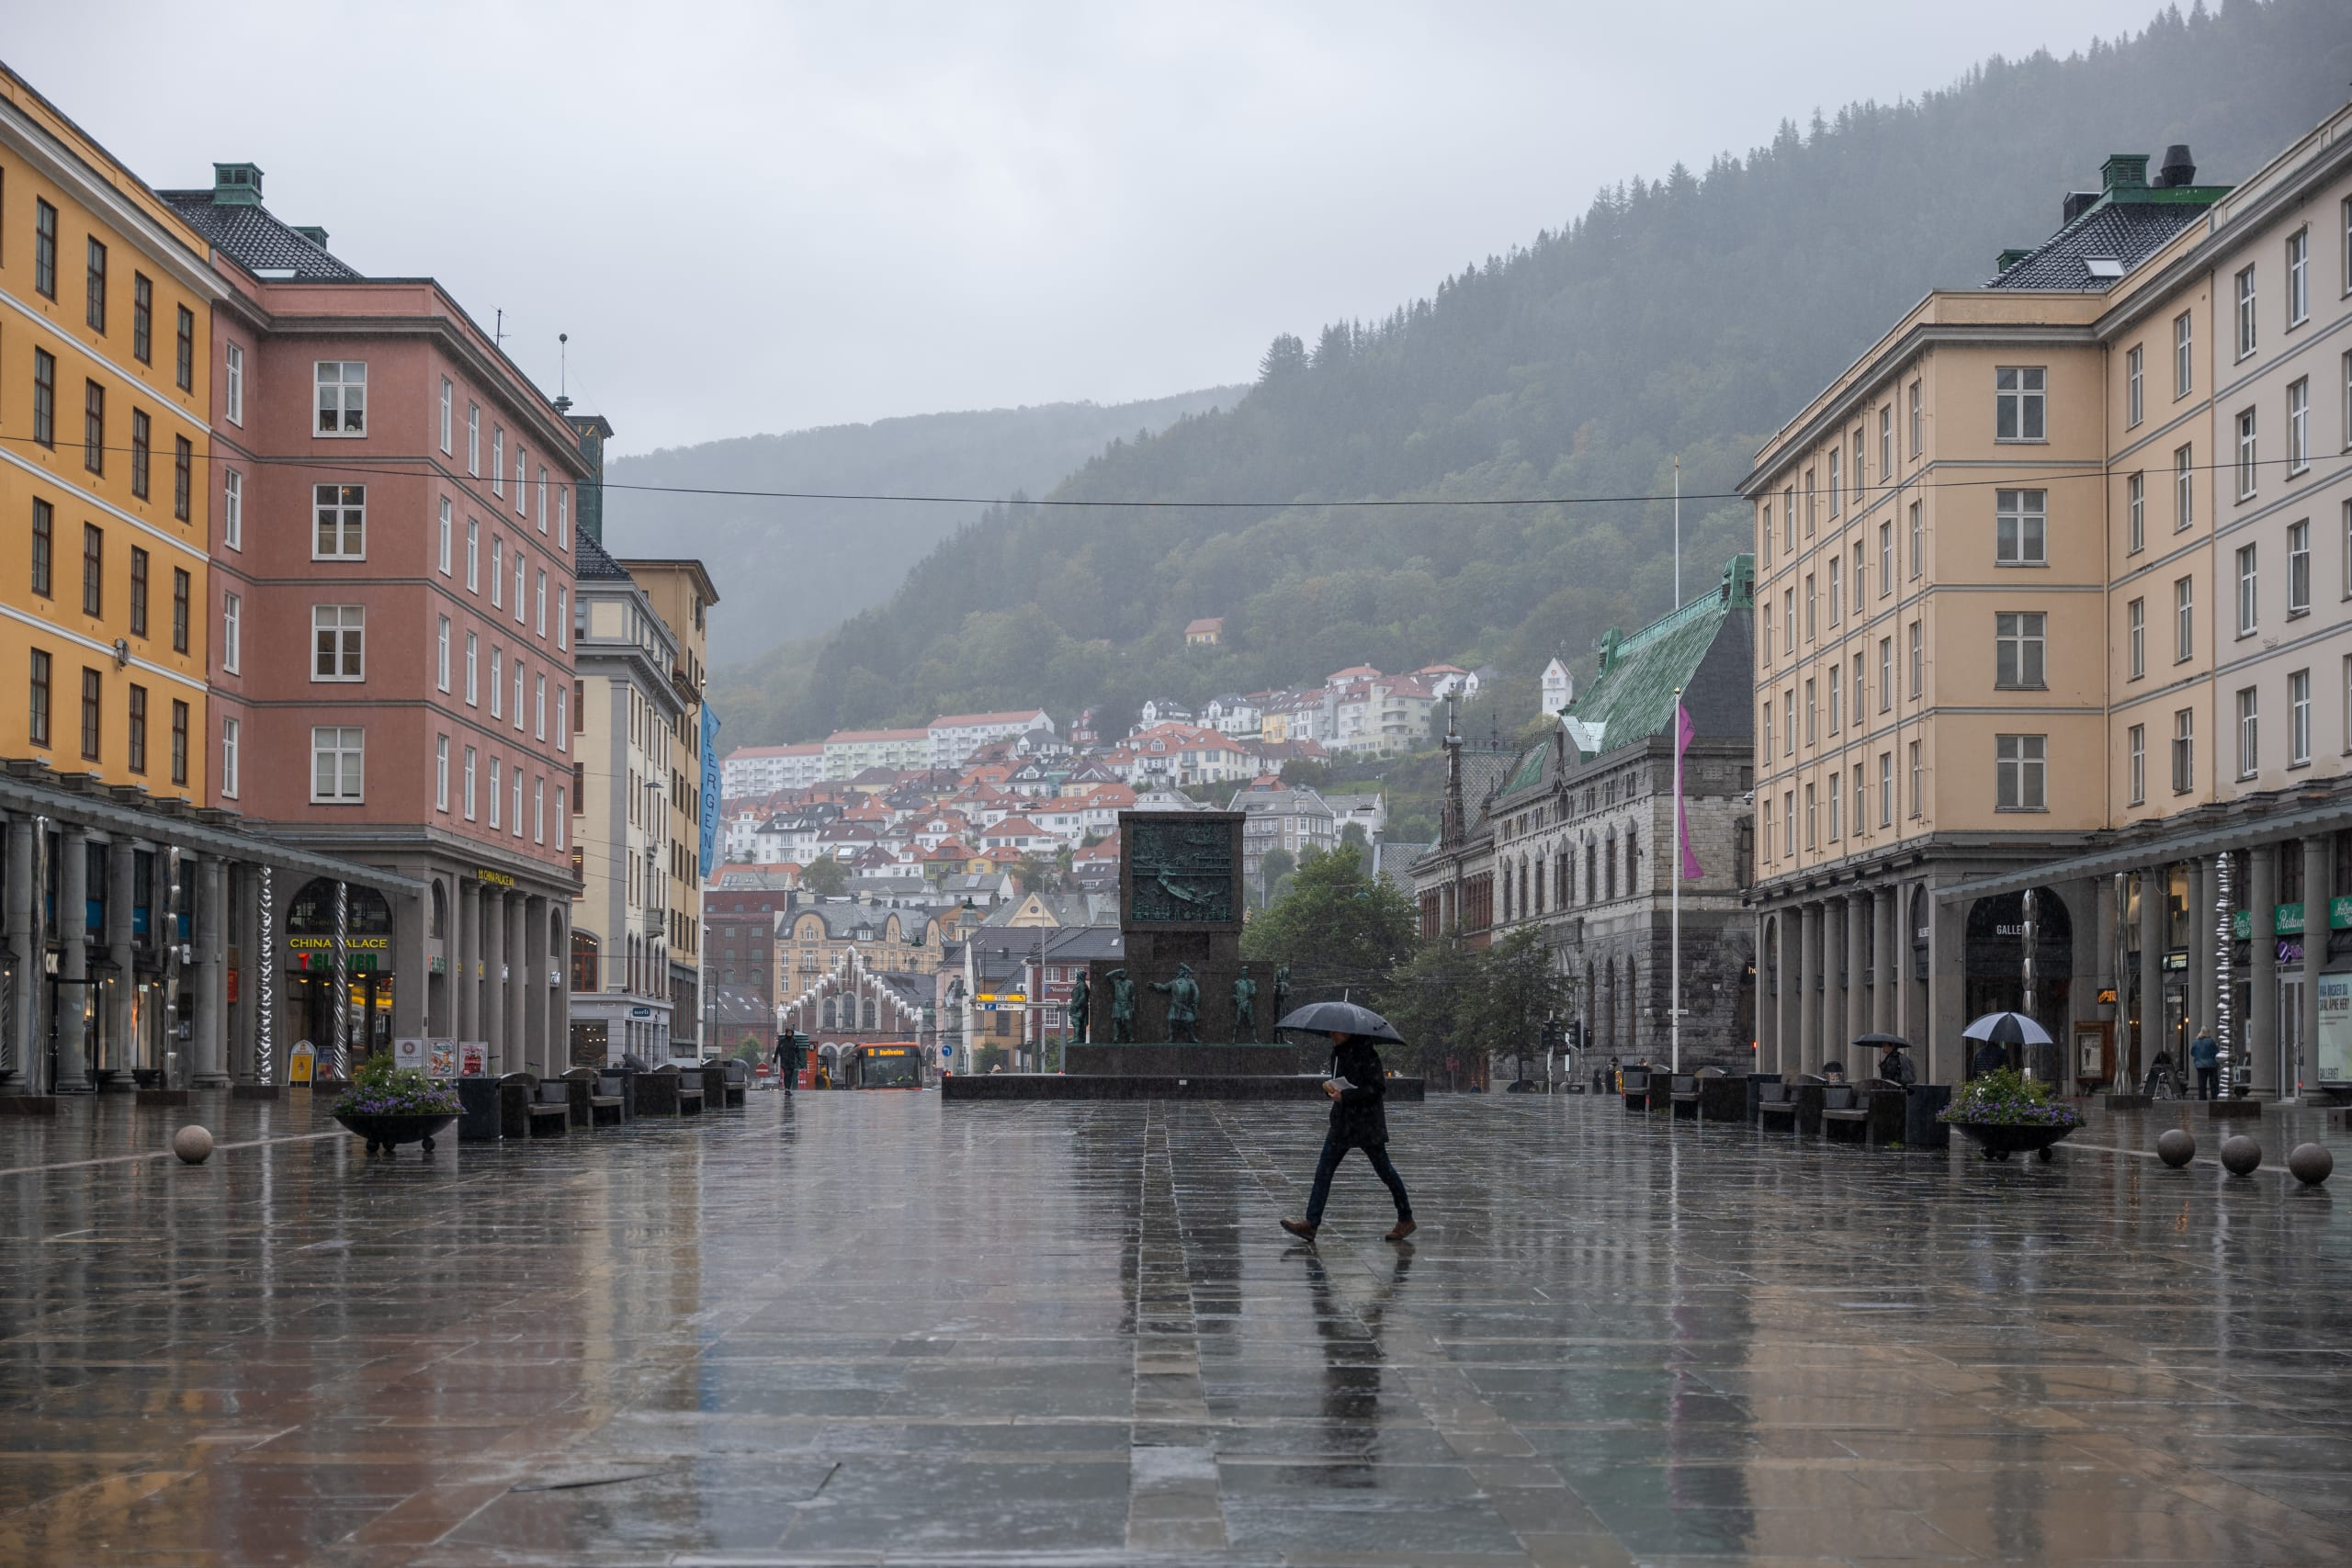 Rainy weather at Torgalmenningen